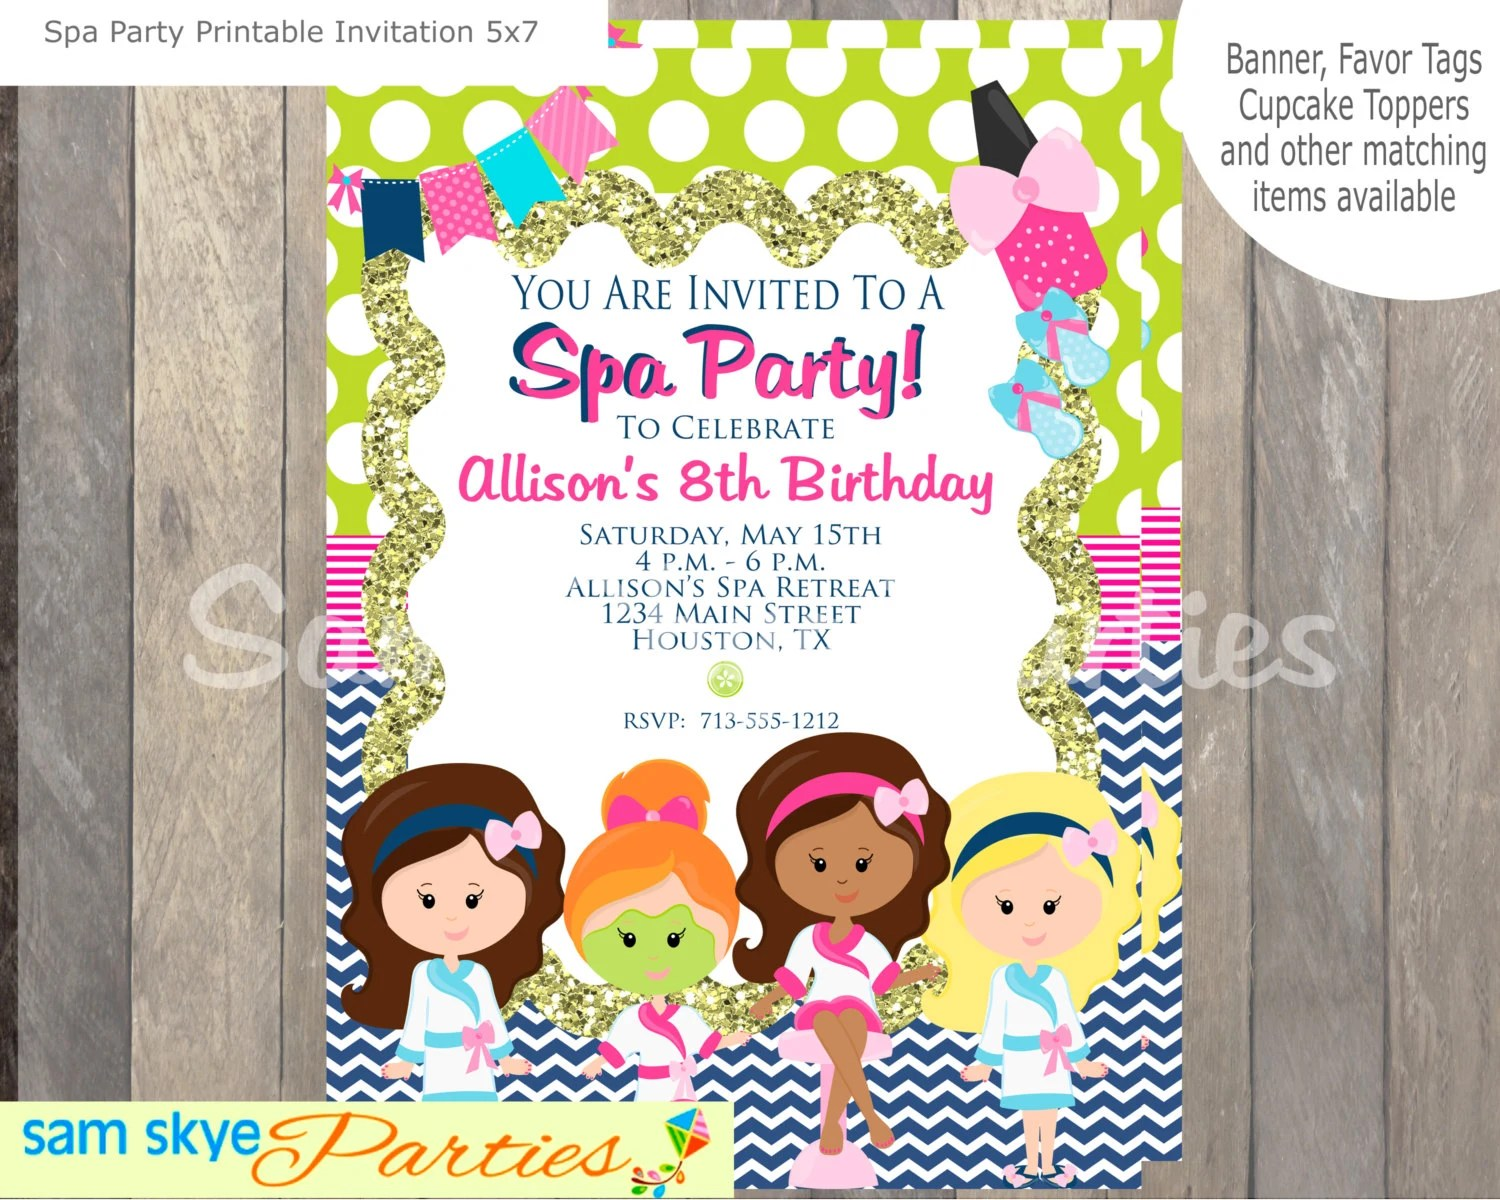 Printable Invitations 5x7